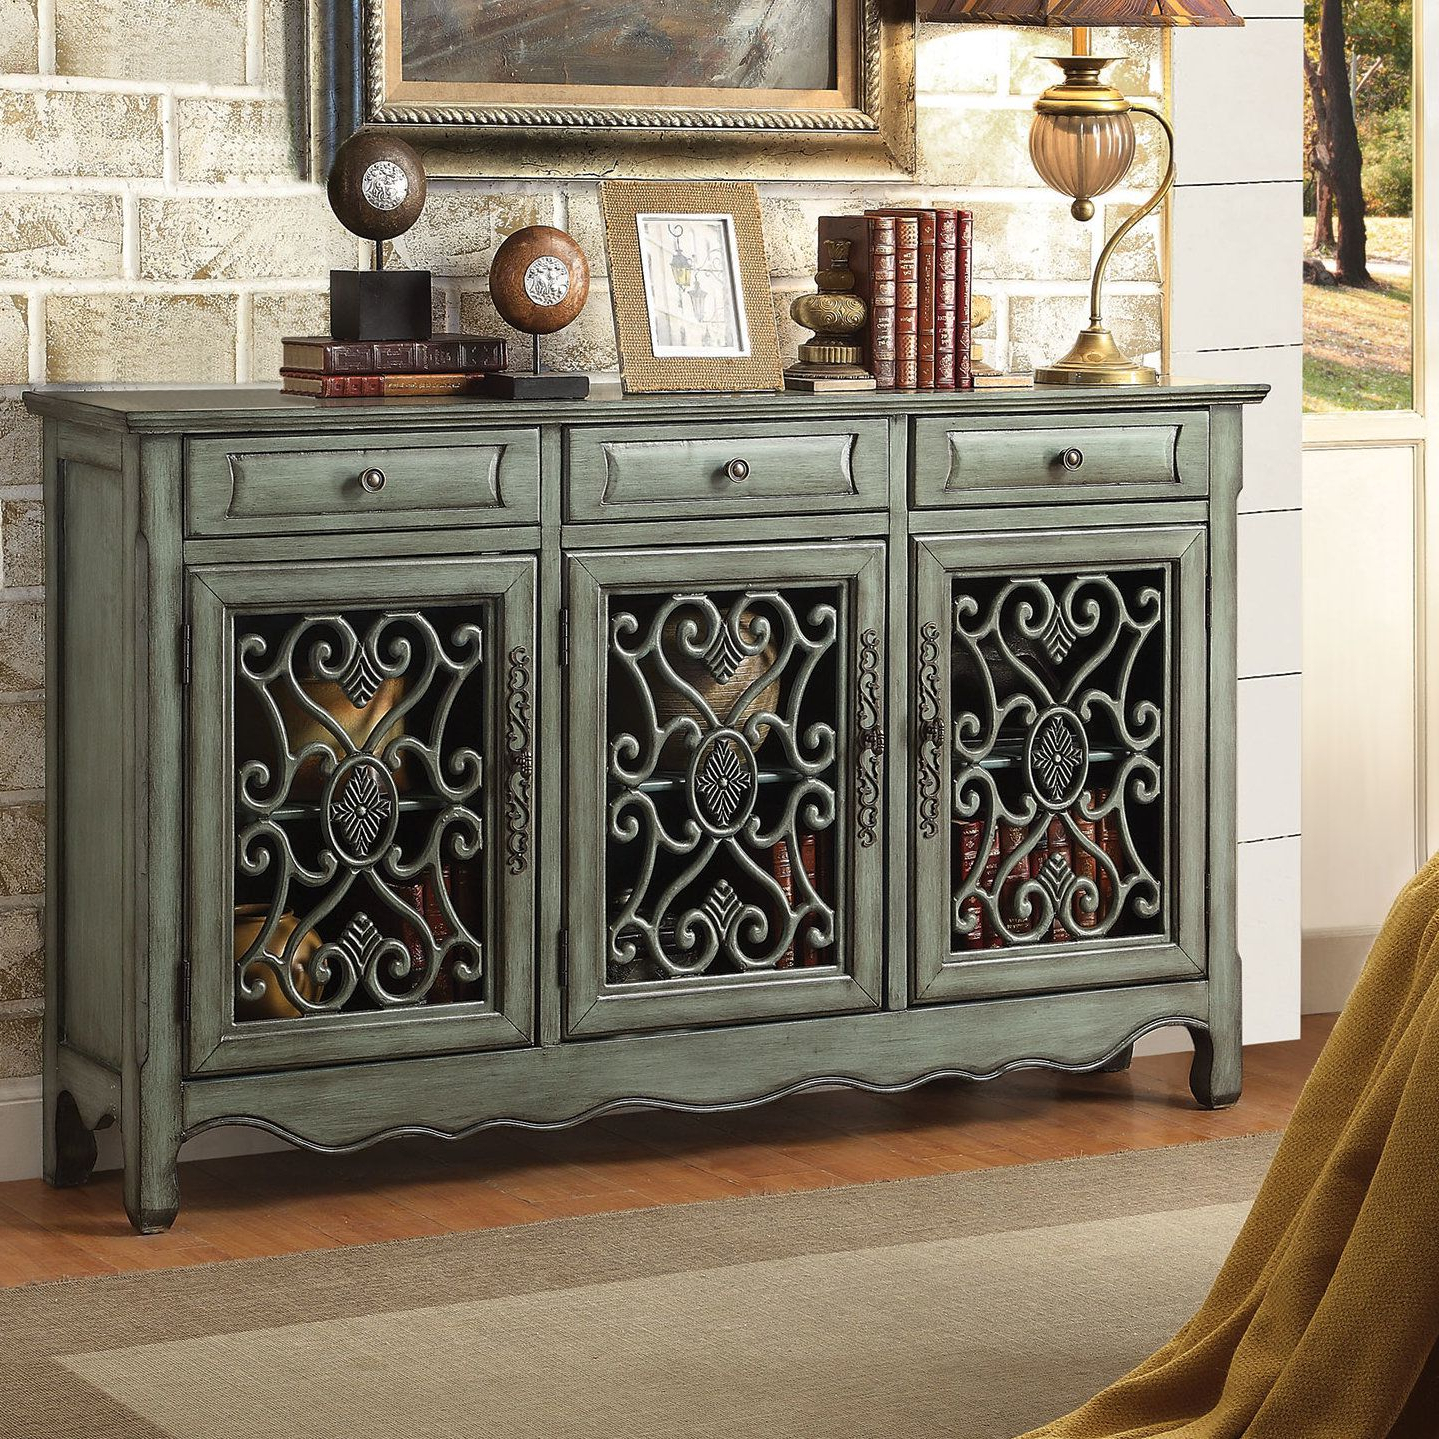 Helvic 3 Drawer 3 Door Accent Cabinet | Farmhouse Furniture Within Candace Door Credenzas (View 13 of 20)